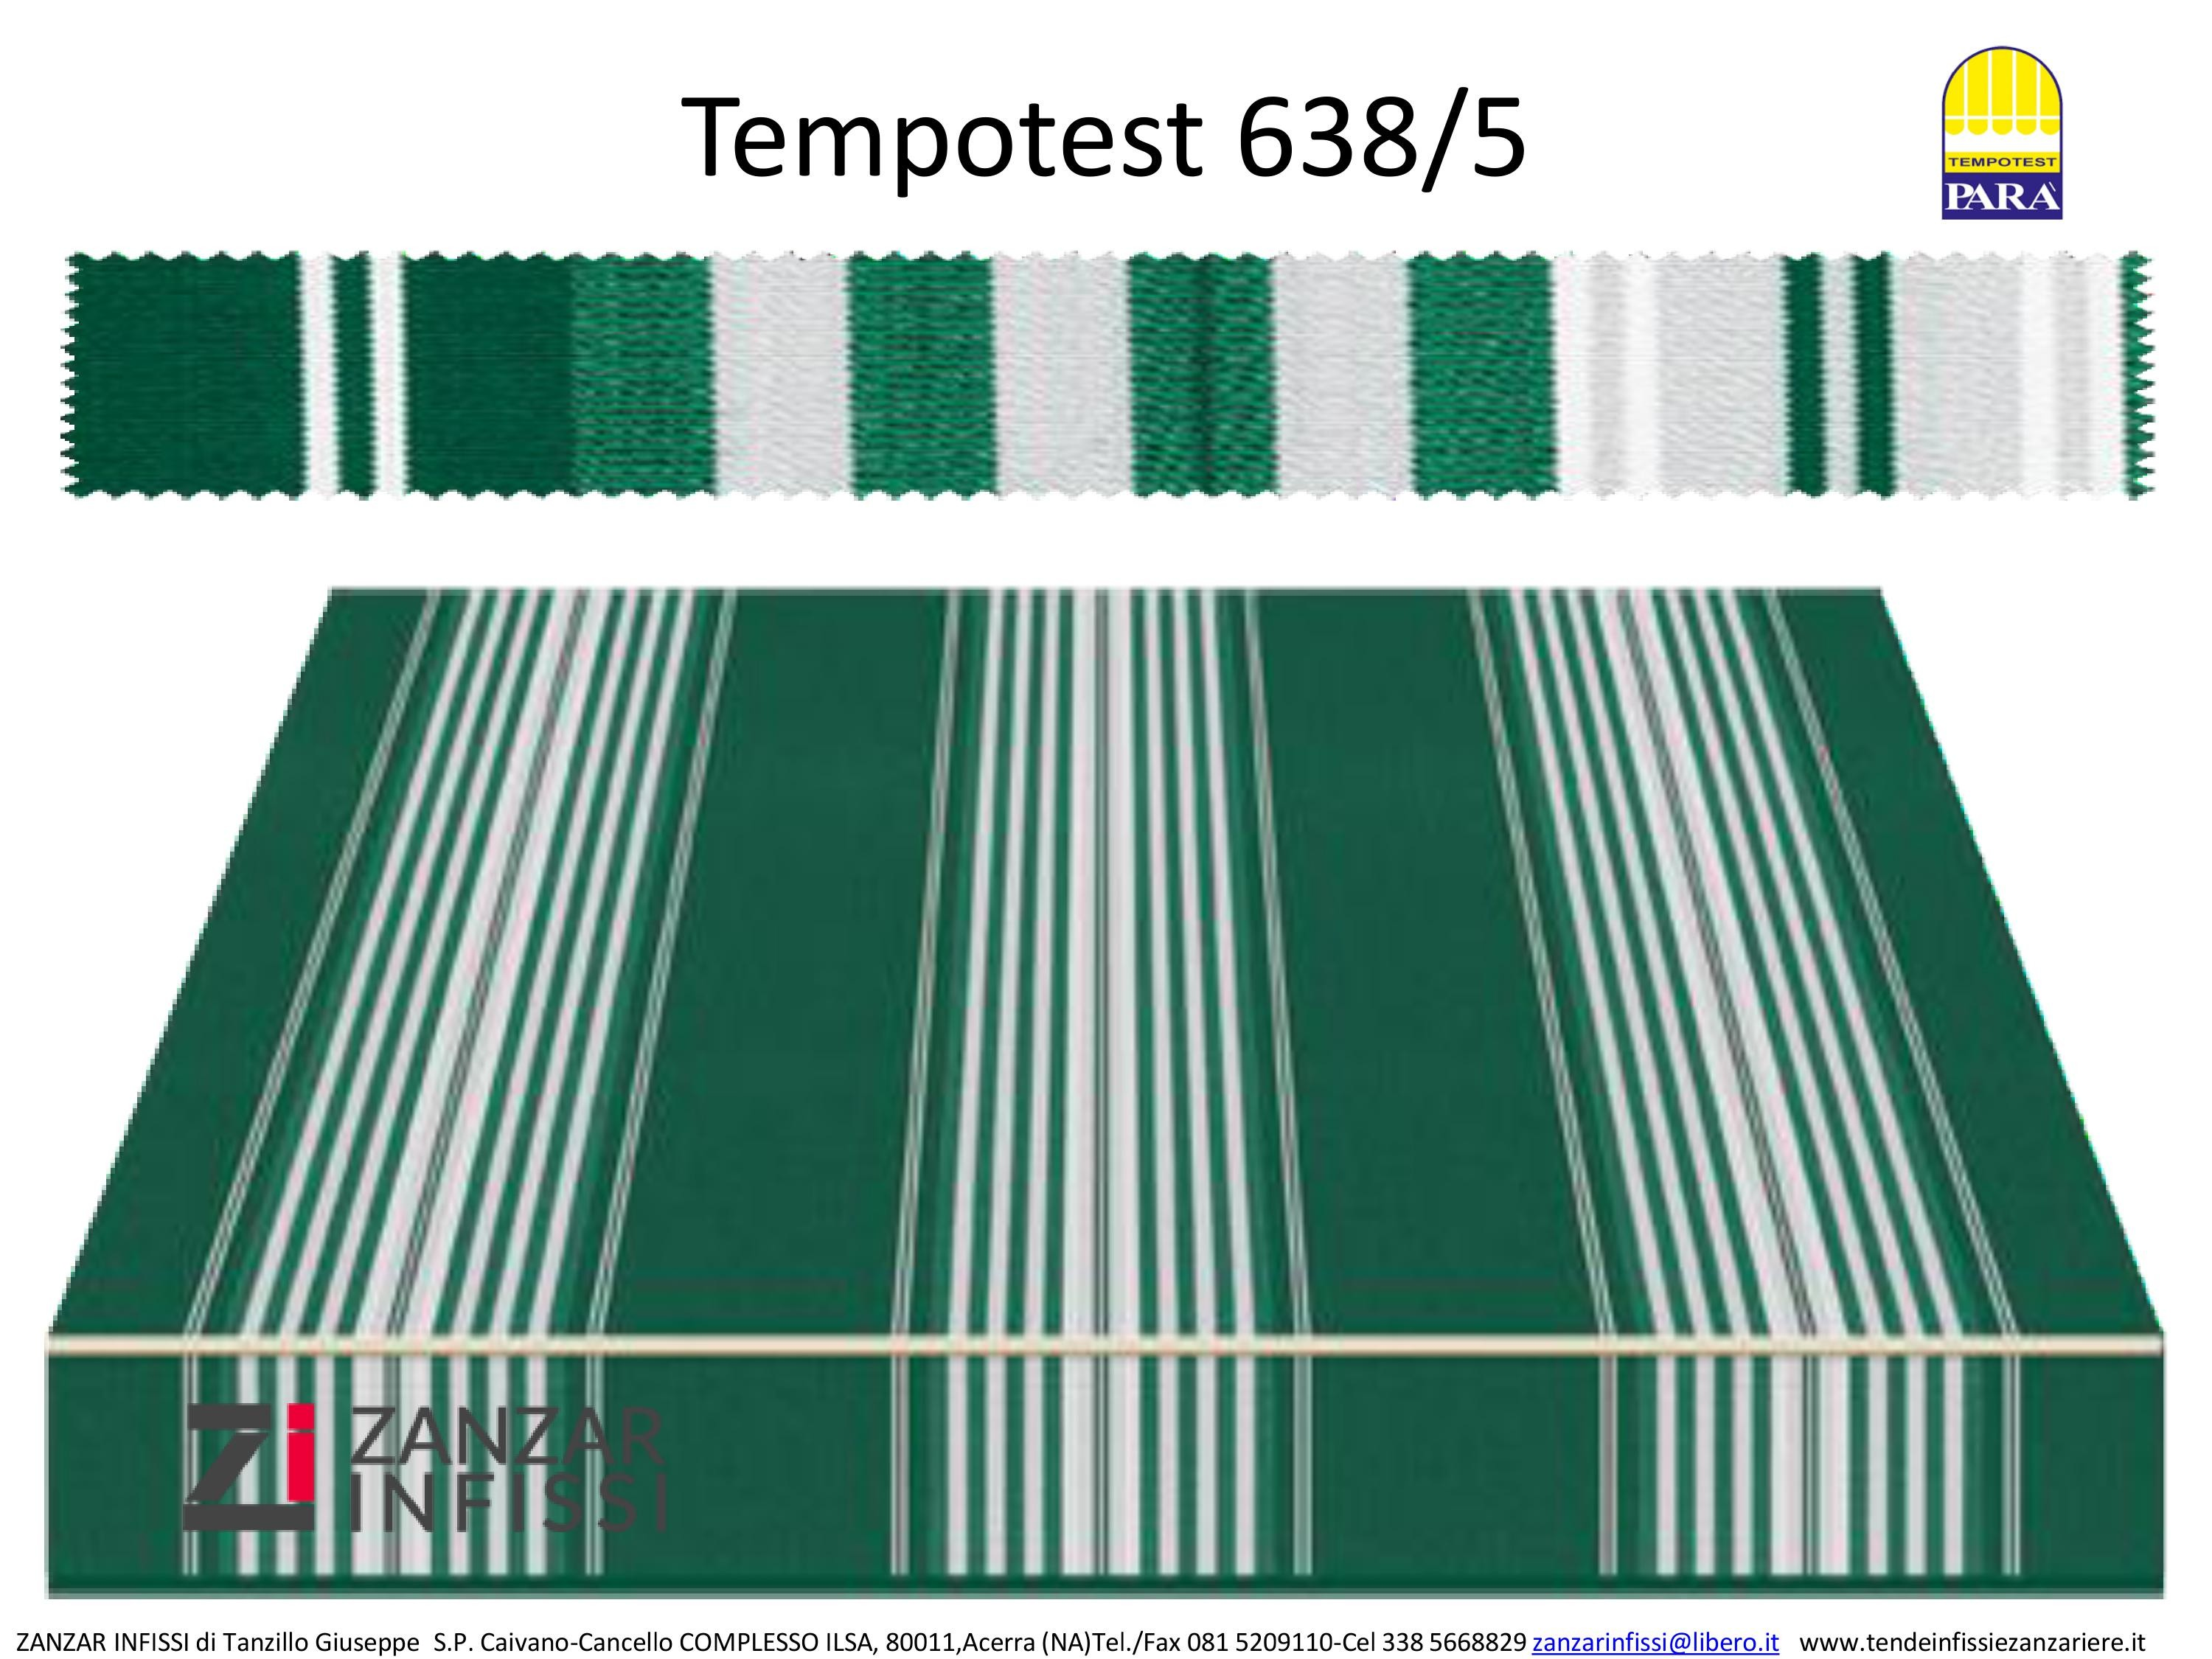 Tempotest 638/5